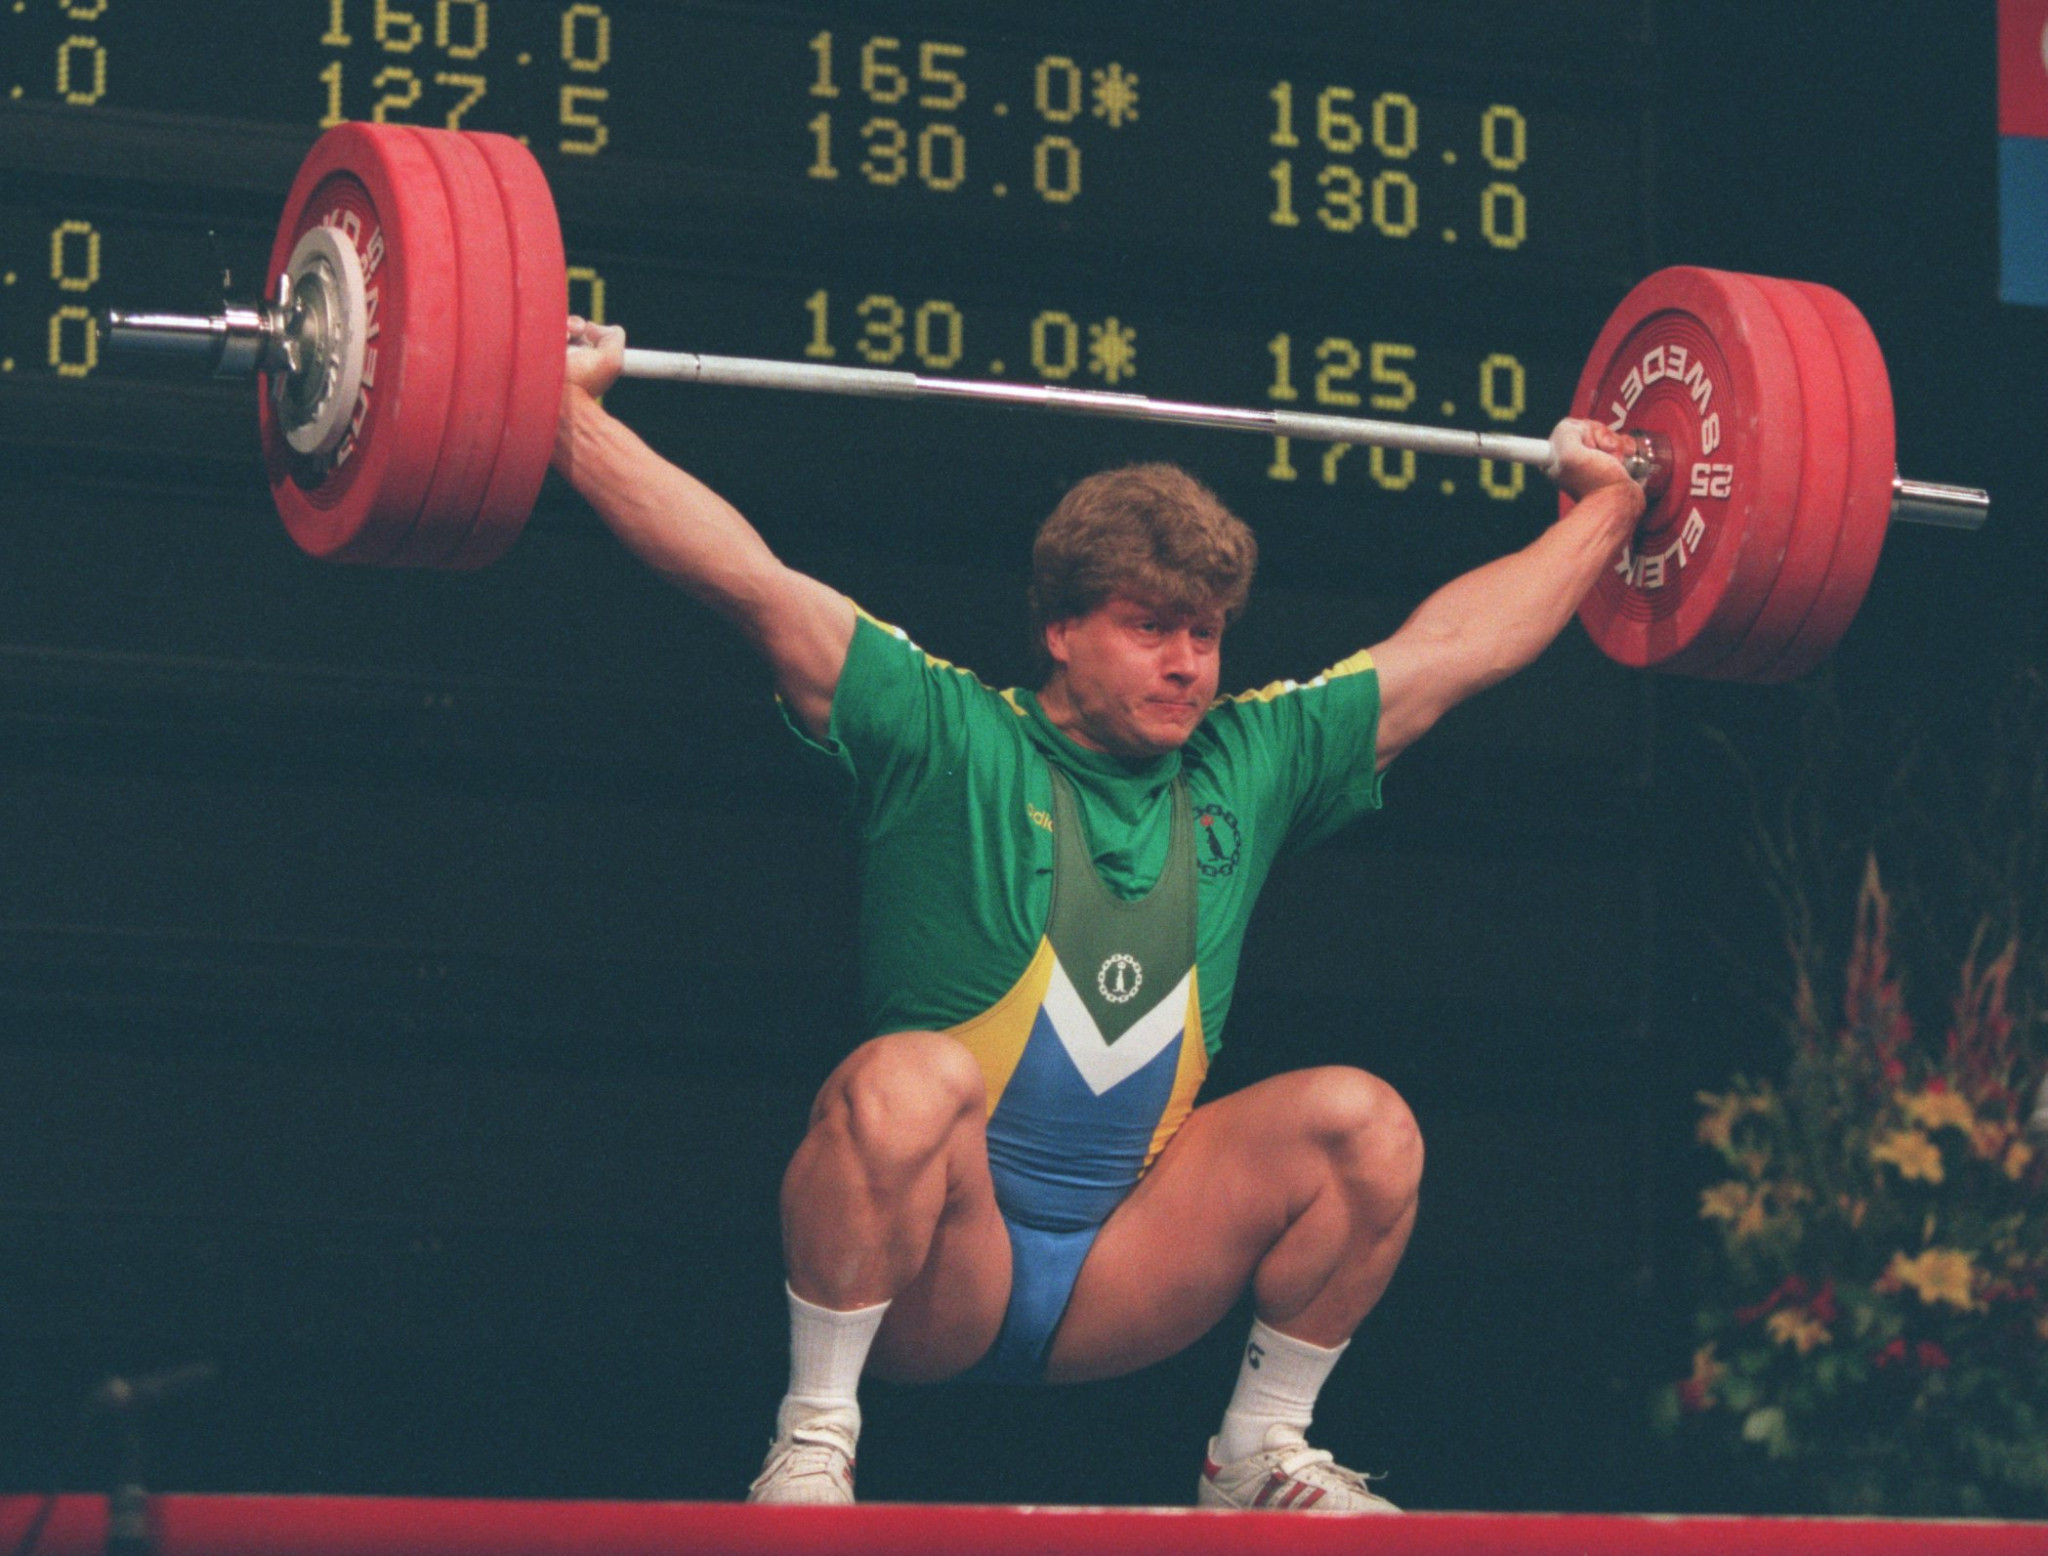 Nicu Vlad, pictured above, a former weightlifter himself, is now president of the Romanian Weightlifting Federation, and requested the postponement of the World Junior Championships ©Getty Images